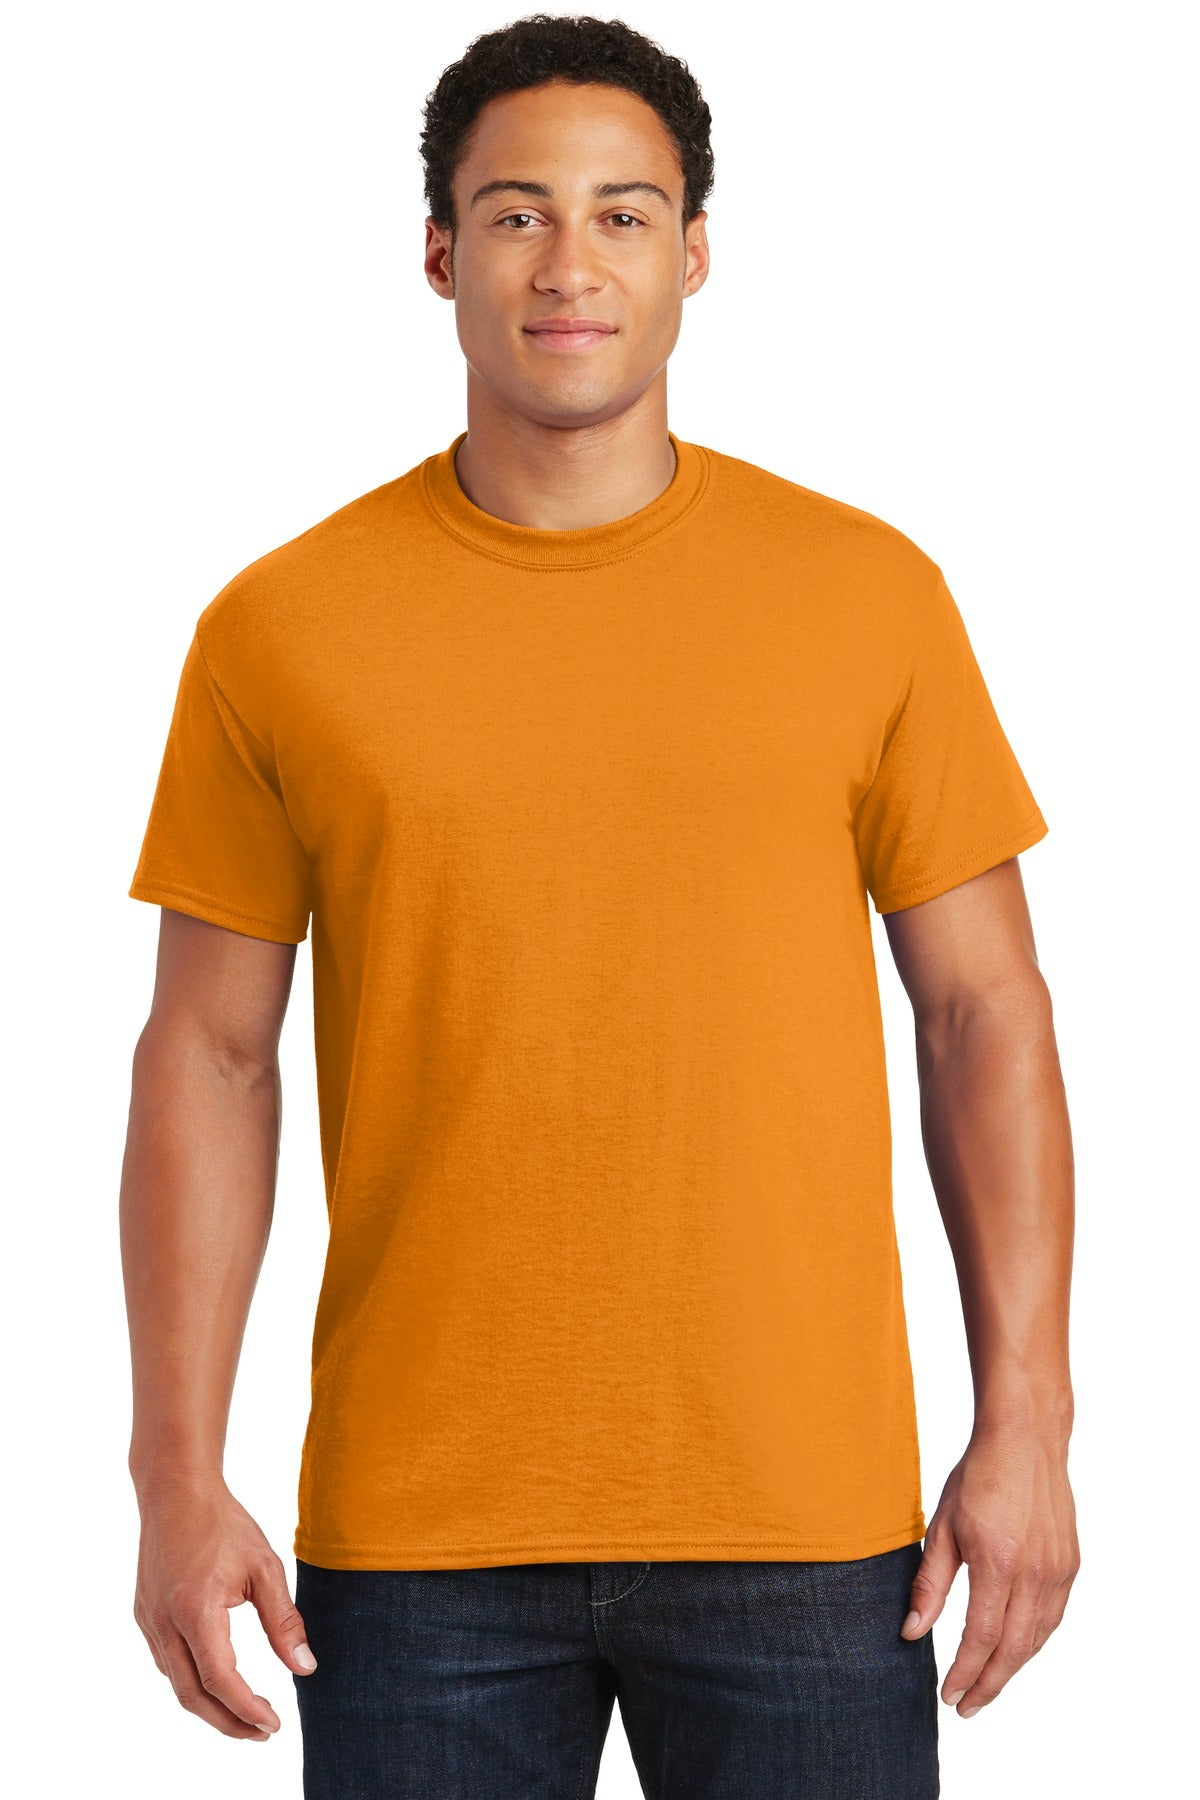 Tennessee Orange Gildan DryBlend 50 Cotton/50 Poly T-Shirt.